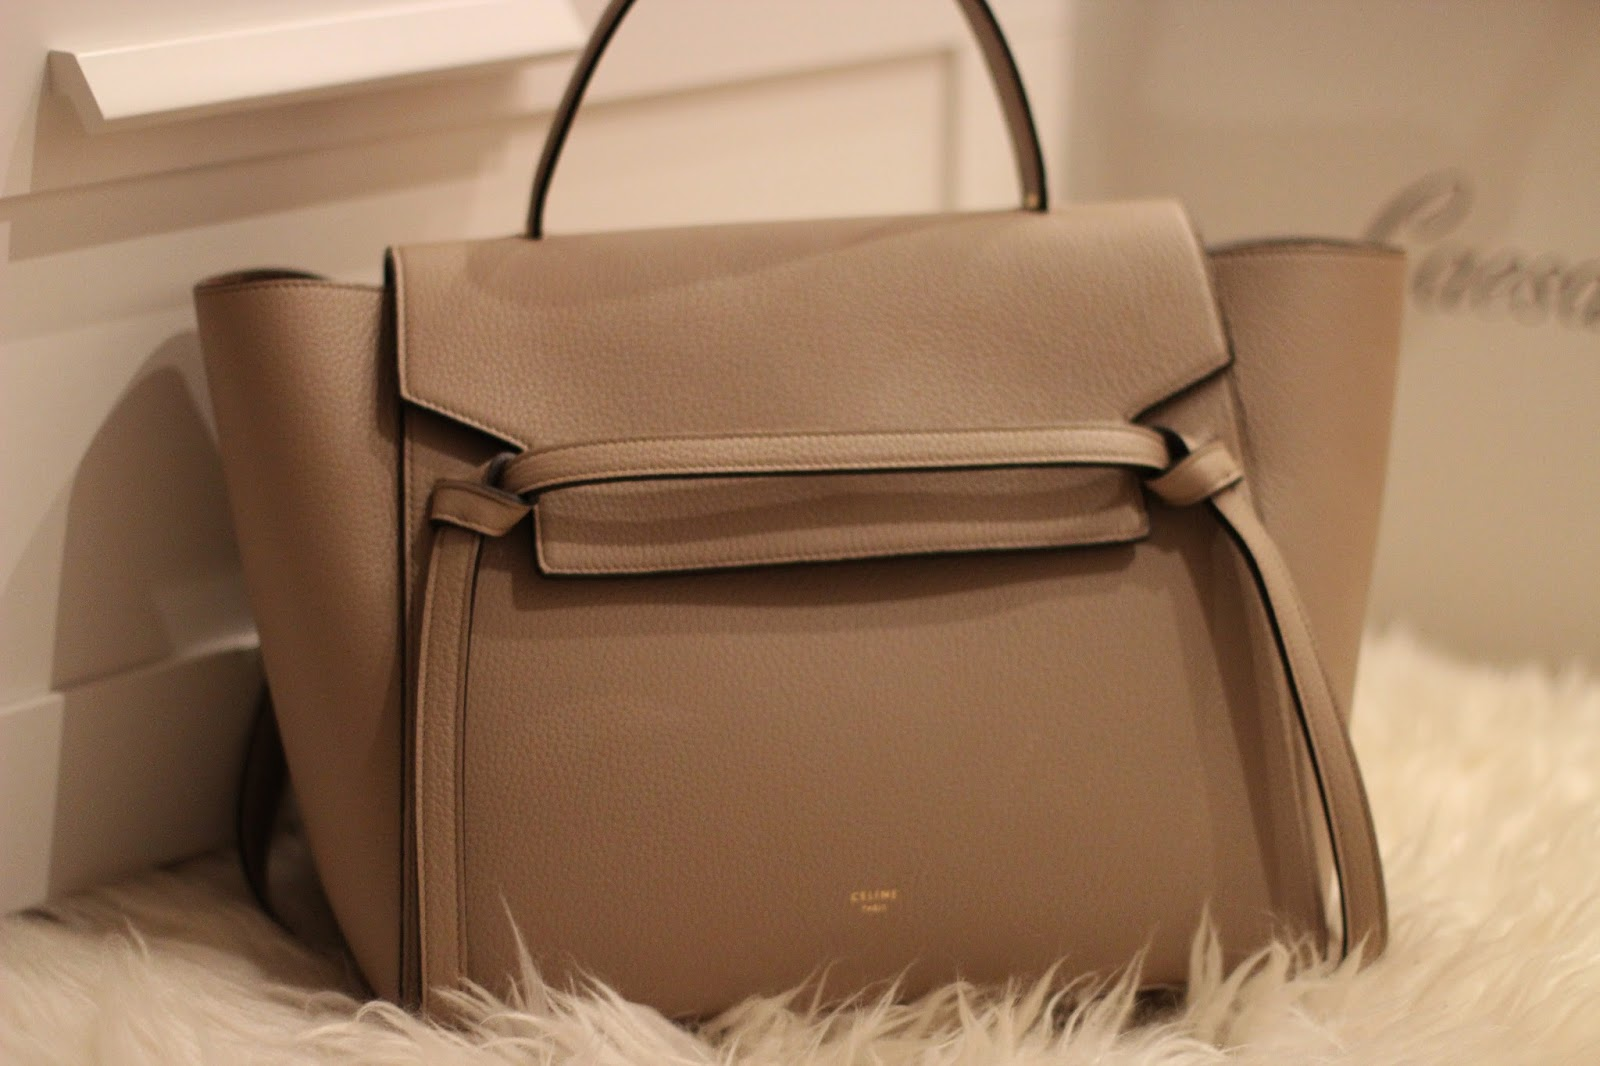 celine luggage mini price - Arifashionthread - Luxembourg Fashion and Lifestyle Blog: New in ...